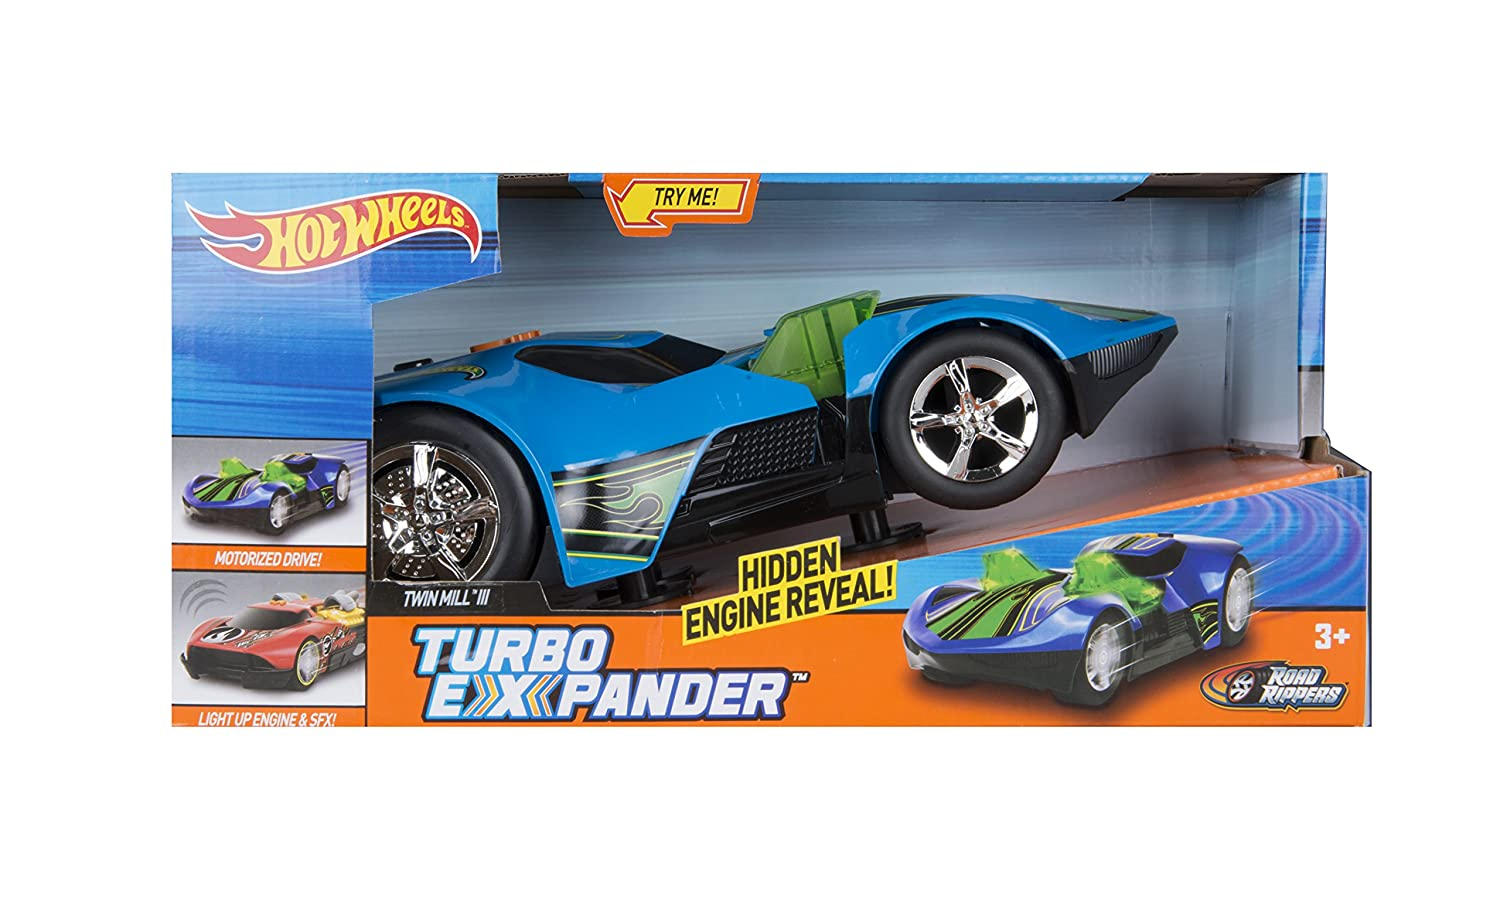 Amazon.com: Toy State Hot Wheels Turbo Expander Twin Mill III Light & Sound Vehicle: Toys & Games